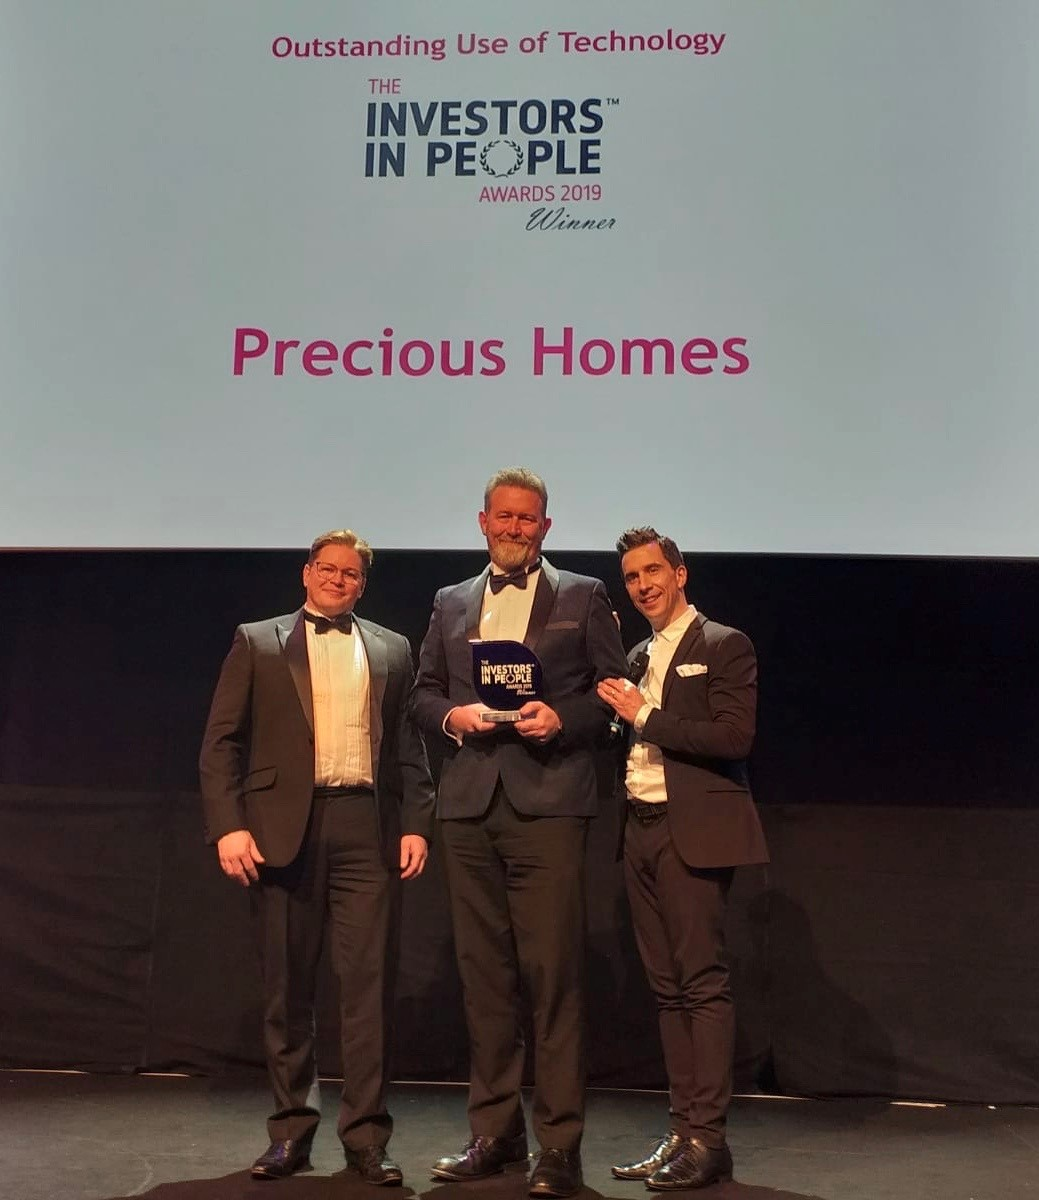 Investors in People Award win for Precious Homes